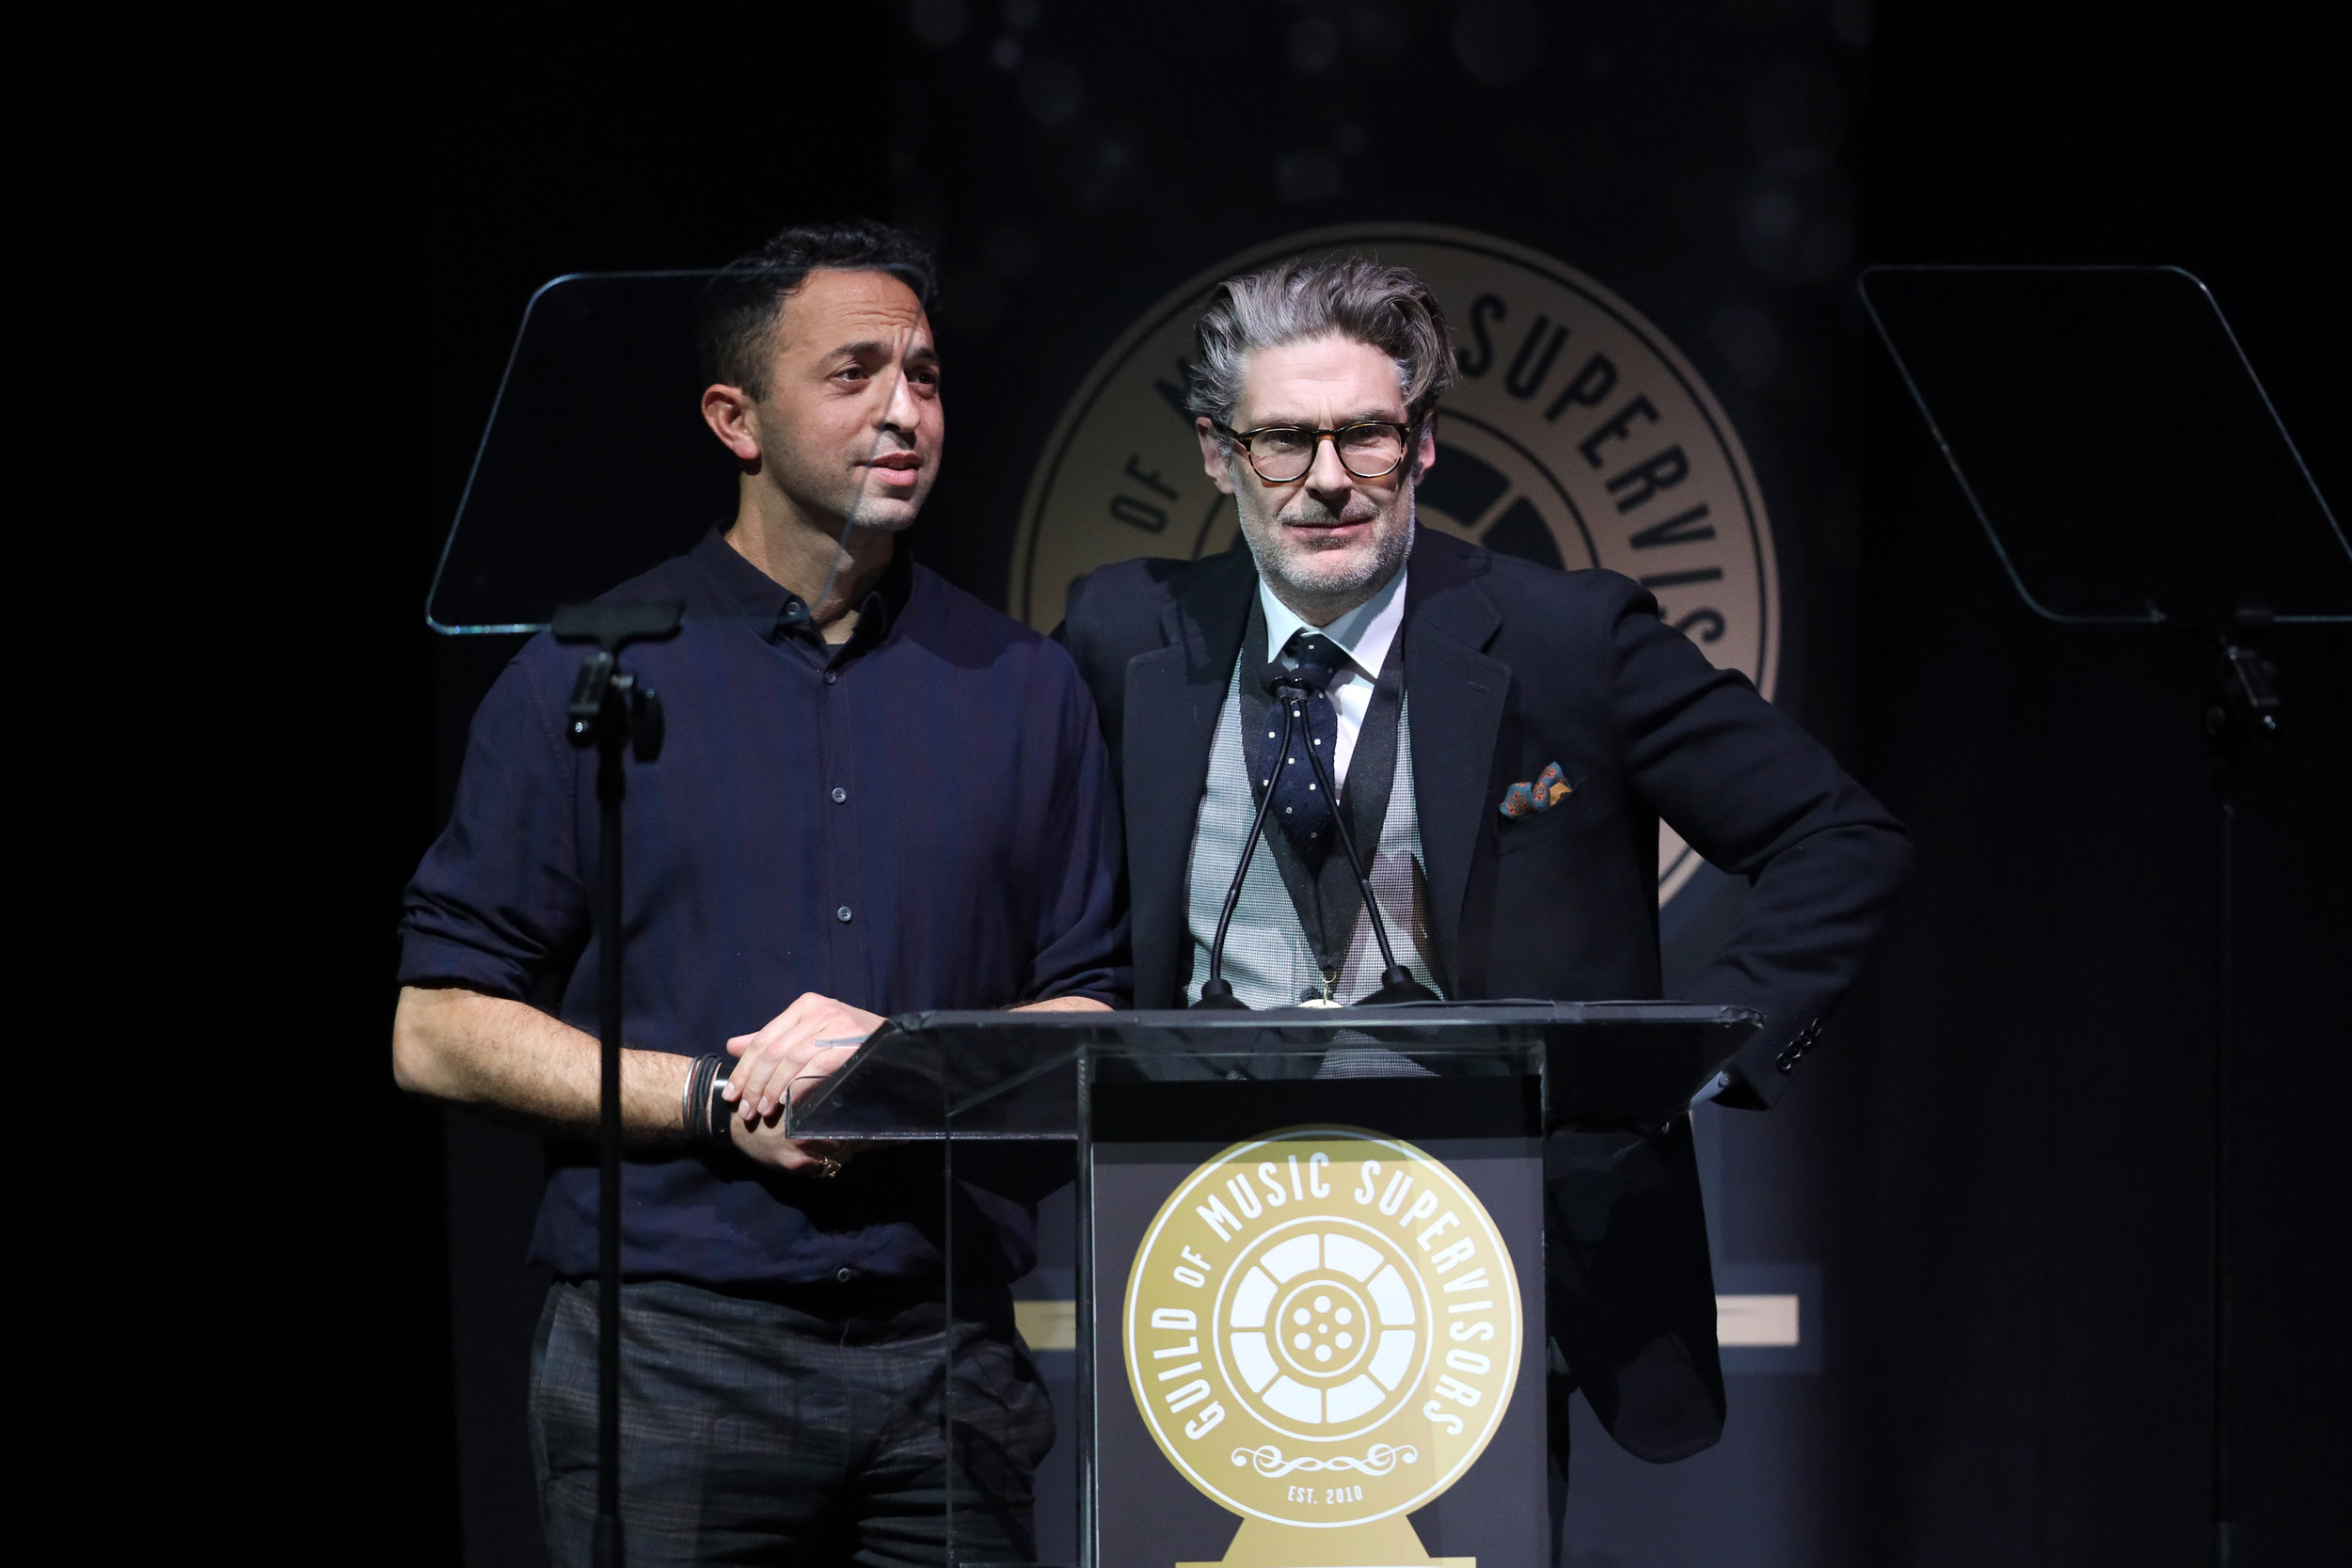 Andrew Kahn and Matt Biffa presenting at the 9th Annual Guild of Music Supervisors Awards | © Rich Polk | Getty Images